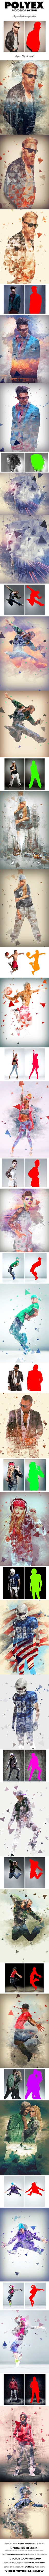 PolyEx Photoshop Action #photoeffect Download: http://graphicriver.net/item/polyex-photoshop-action/11989540?ref=ksioks